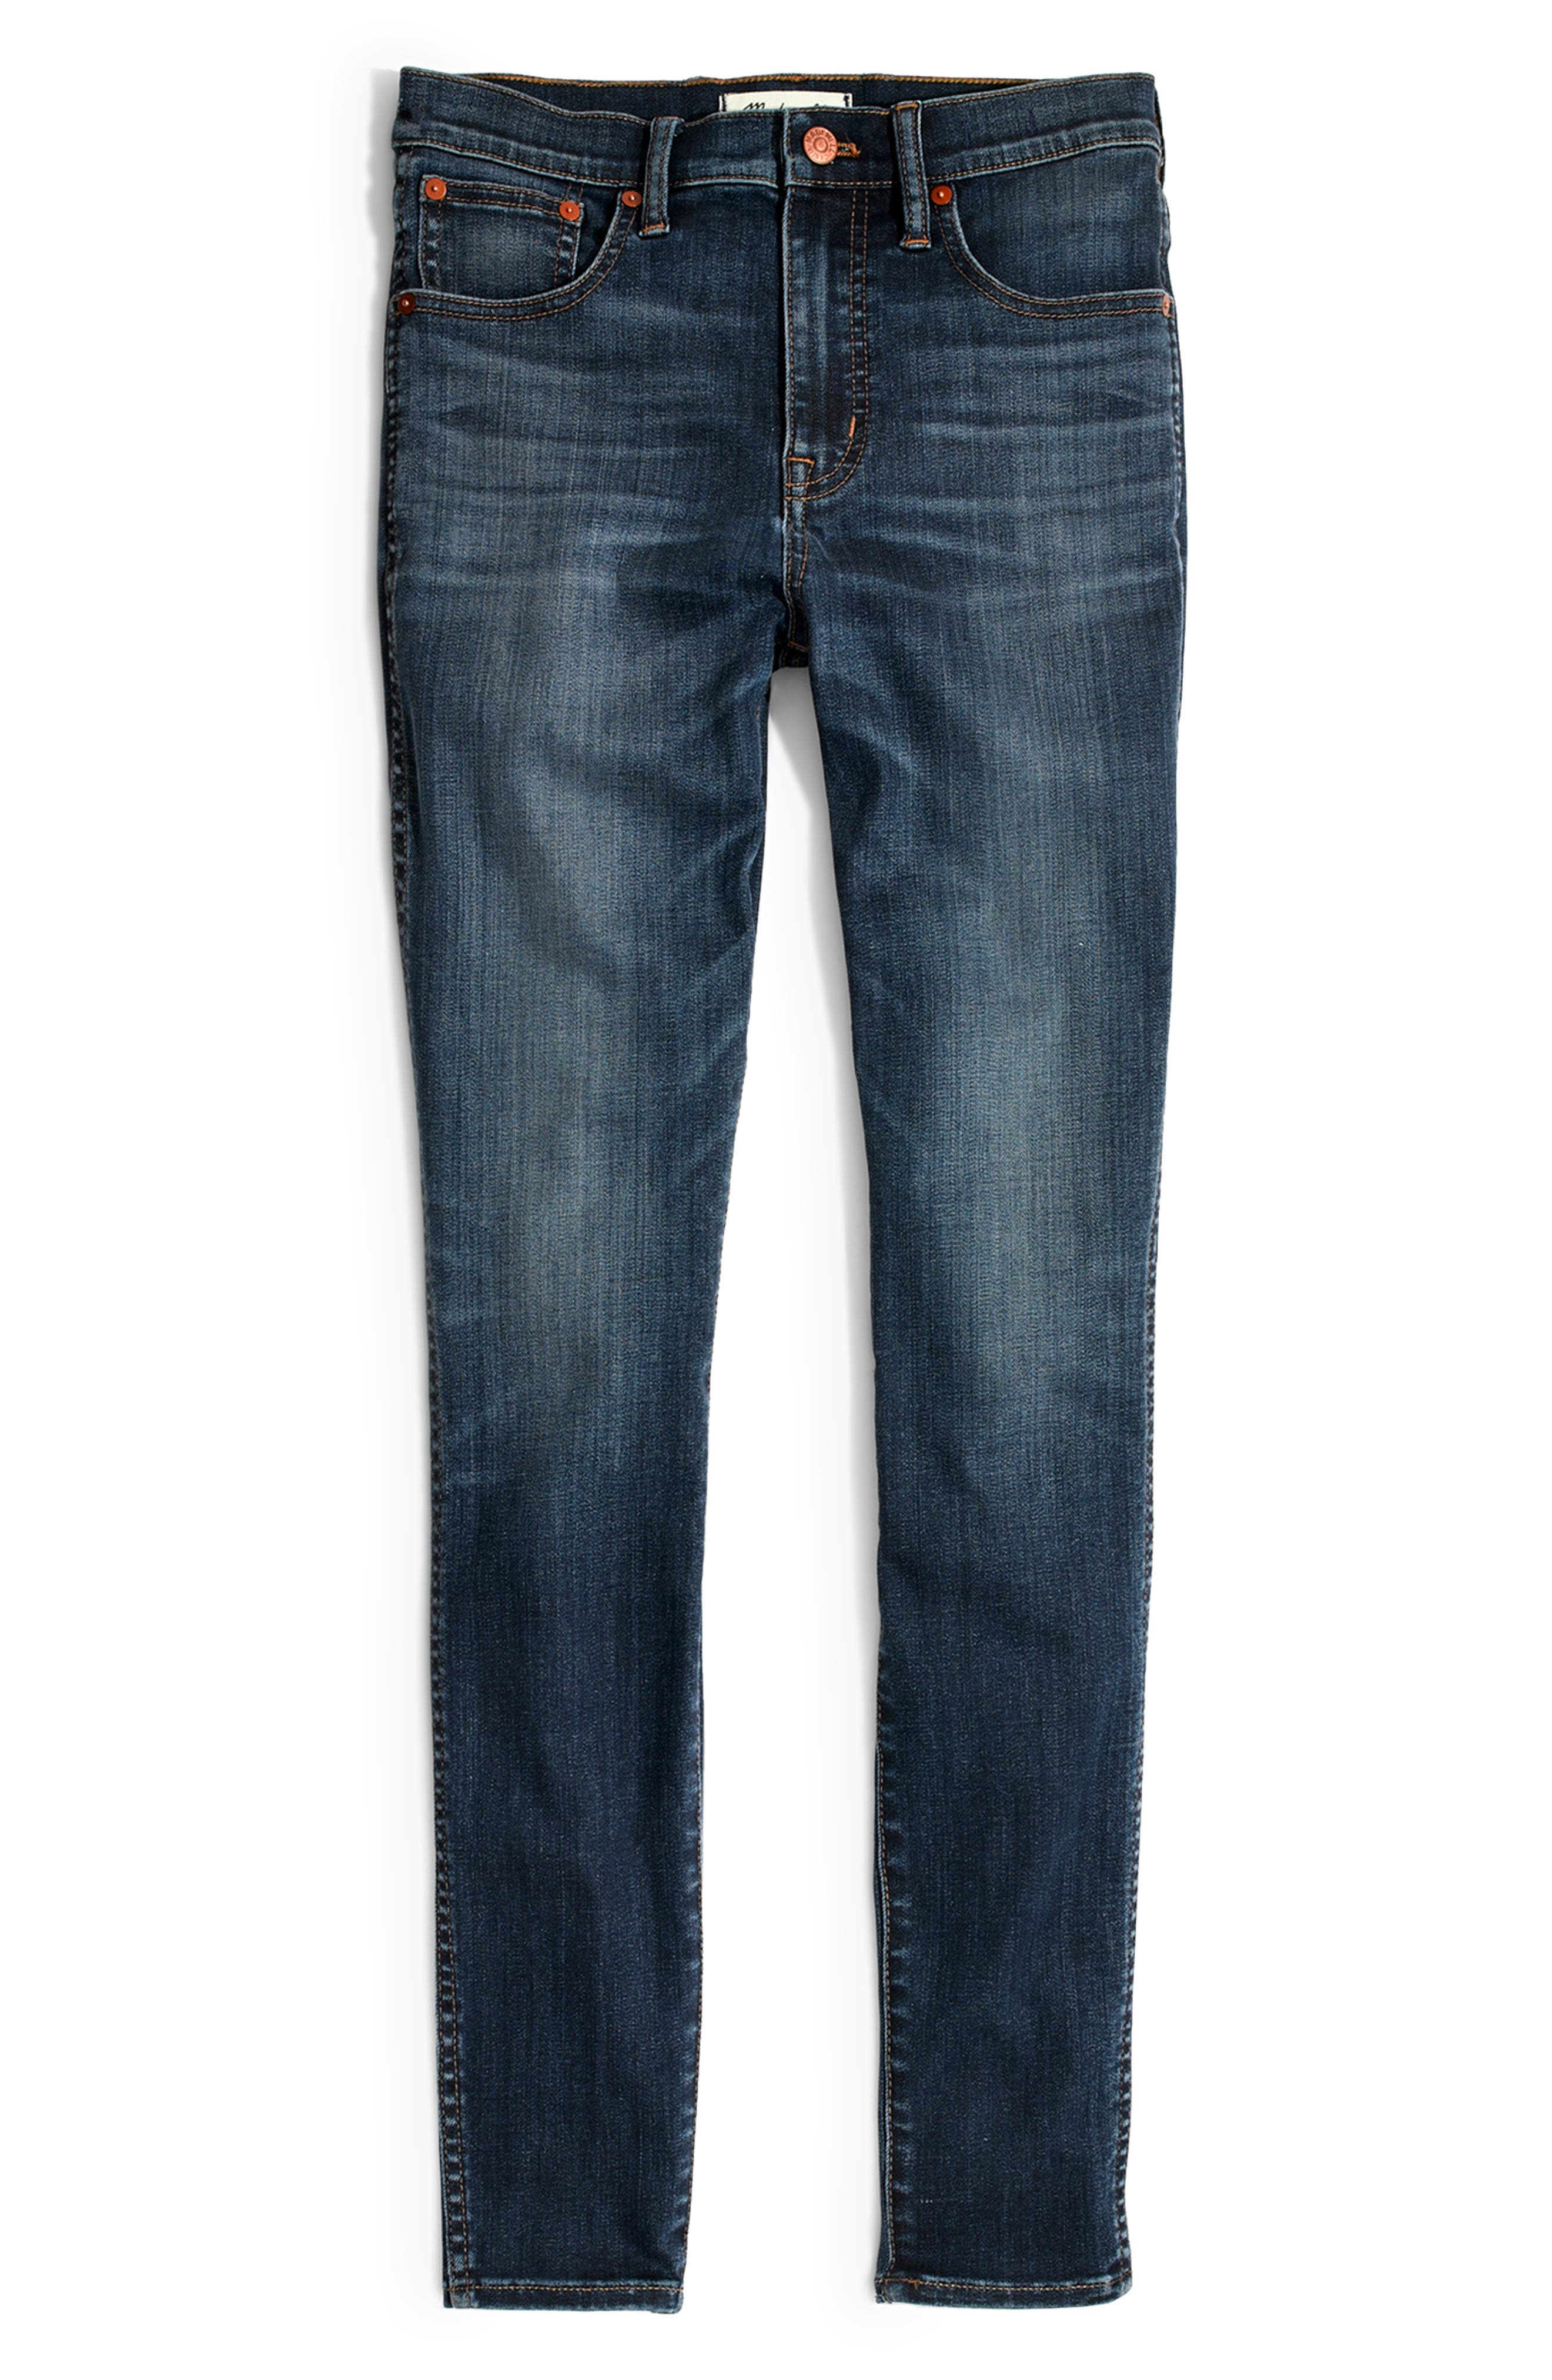 10-Inch High Rise Skinny Jeans,                             Alternate thumbnail 8, color,                             DANNY